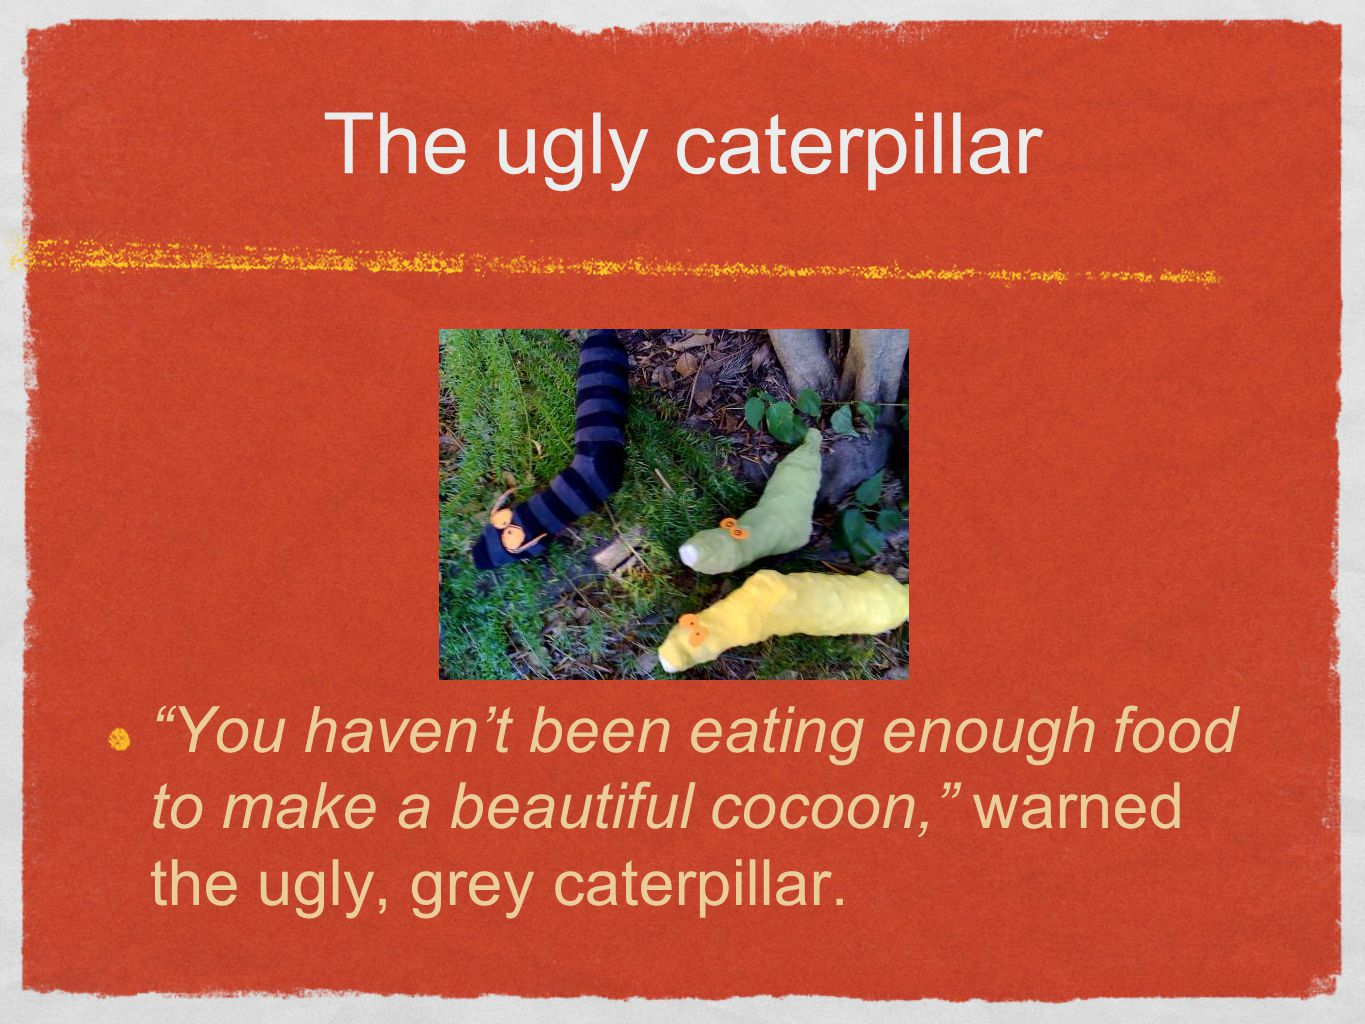 The ugly caterpillar You haven't been eating enough food to make a beautiful cocoon, warned the ugly, grey caterpillar.